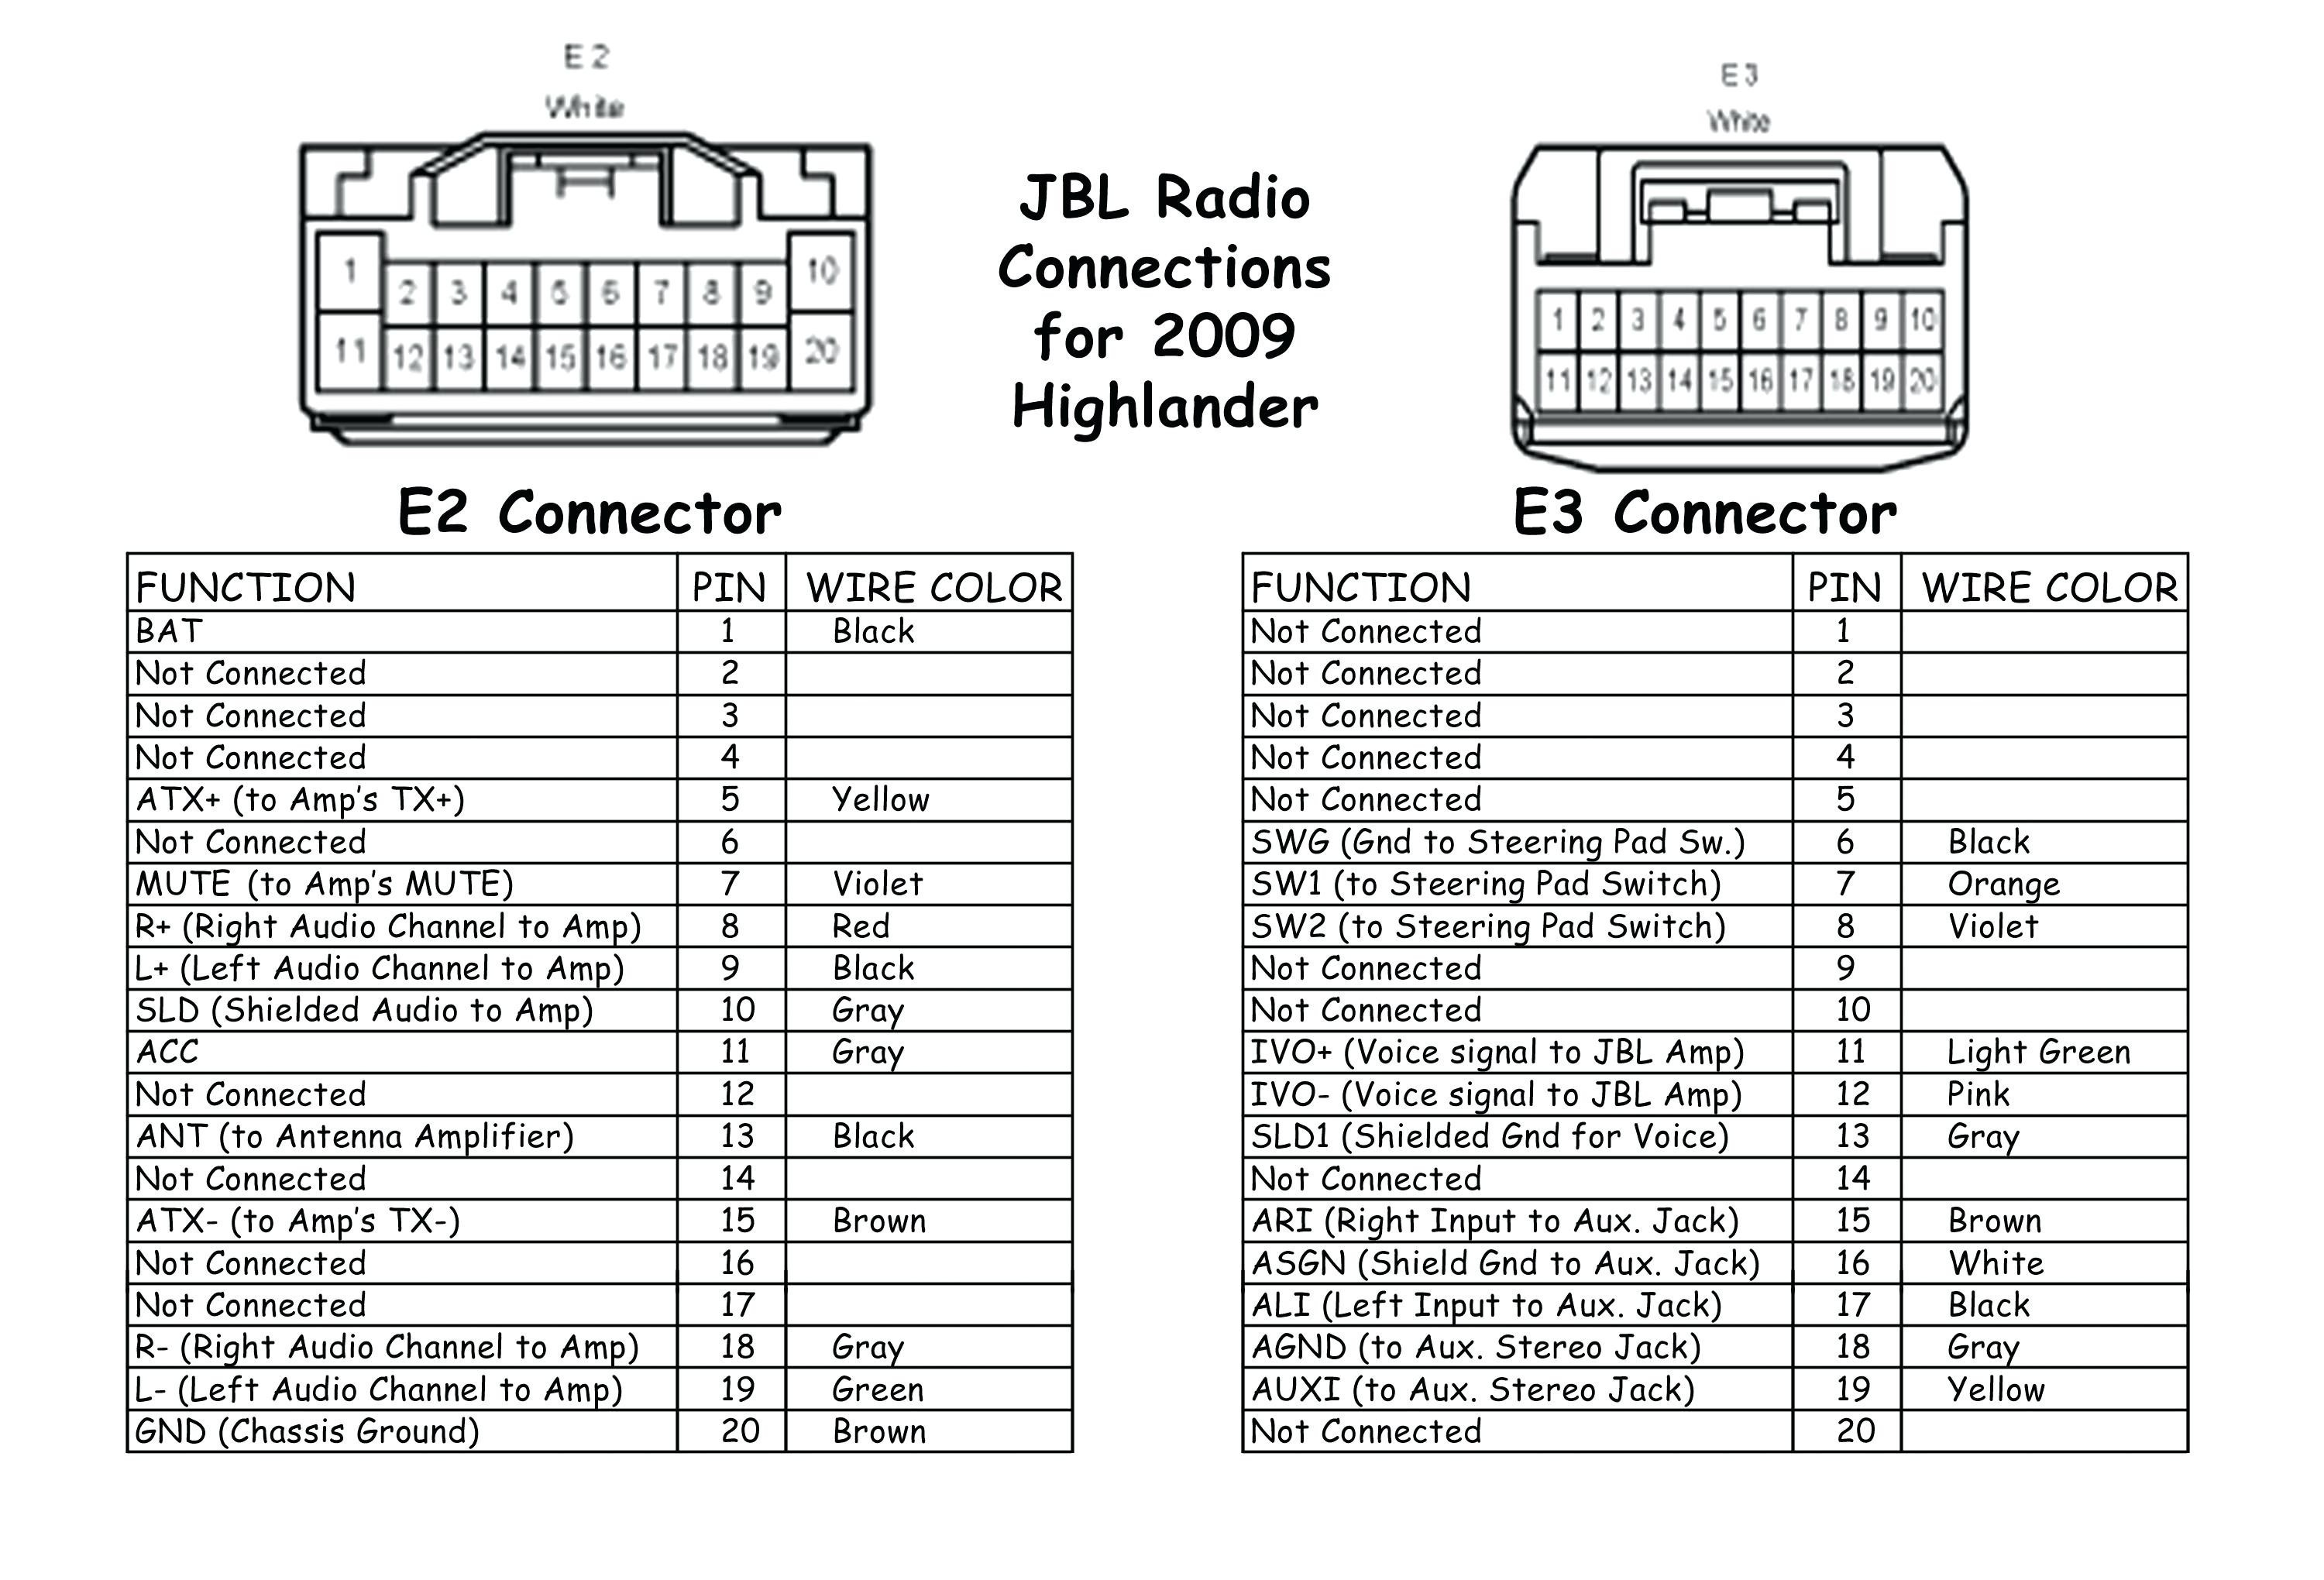 2001 Ford Ranger Wiring Diagram Pdf Inspirational Wiring Diagram Image 2010 Ford  Ranger Radio Wiring Diagram 2001 Ford Ranger Wiring Diagram Pdf